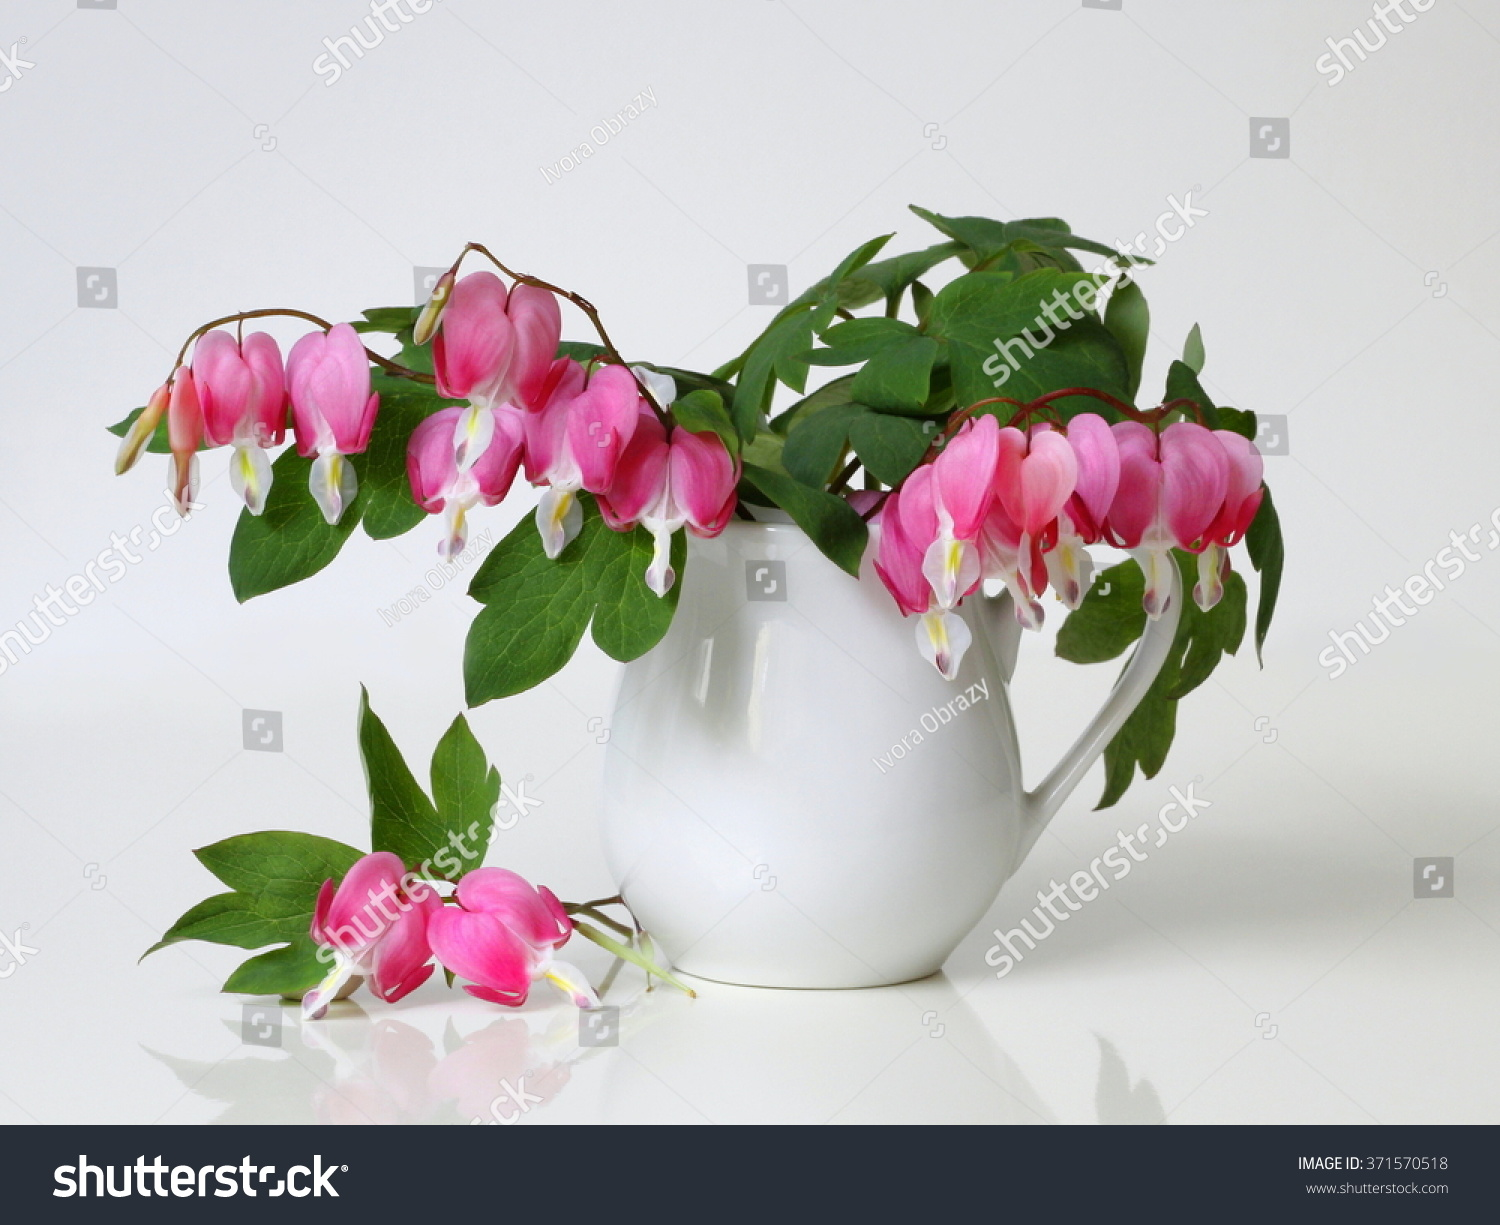 Bouquet Pink Bleeding Heart Flowers Vase Stock Photo (Safe to Use ...